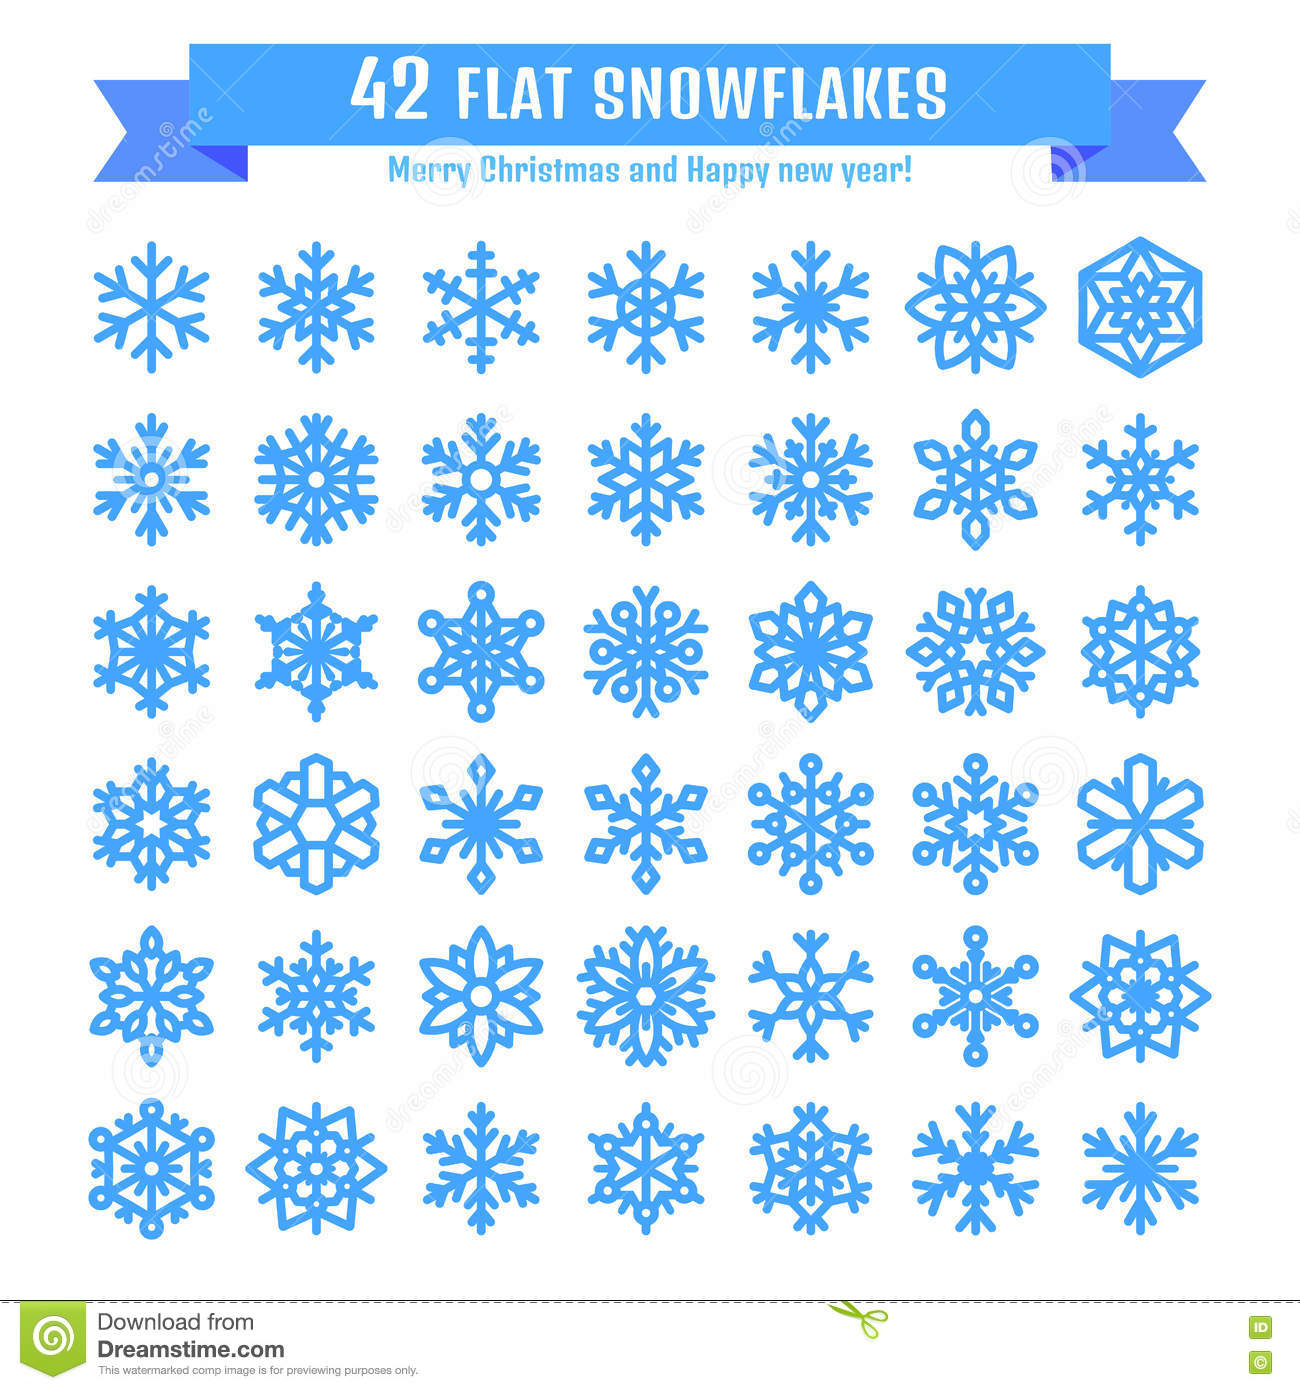 Cute snowflake collection isolated on white background. Flat snow icon, snow flakes silhouette. Nice snowflakes for christmas